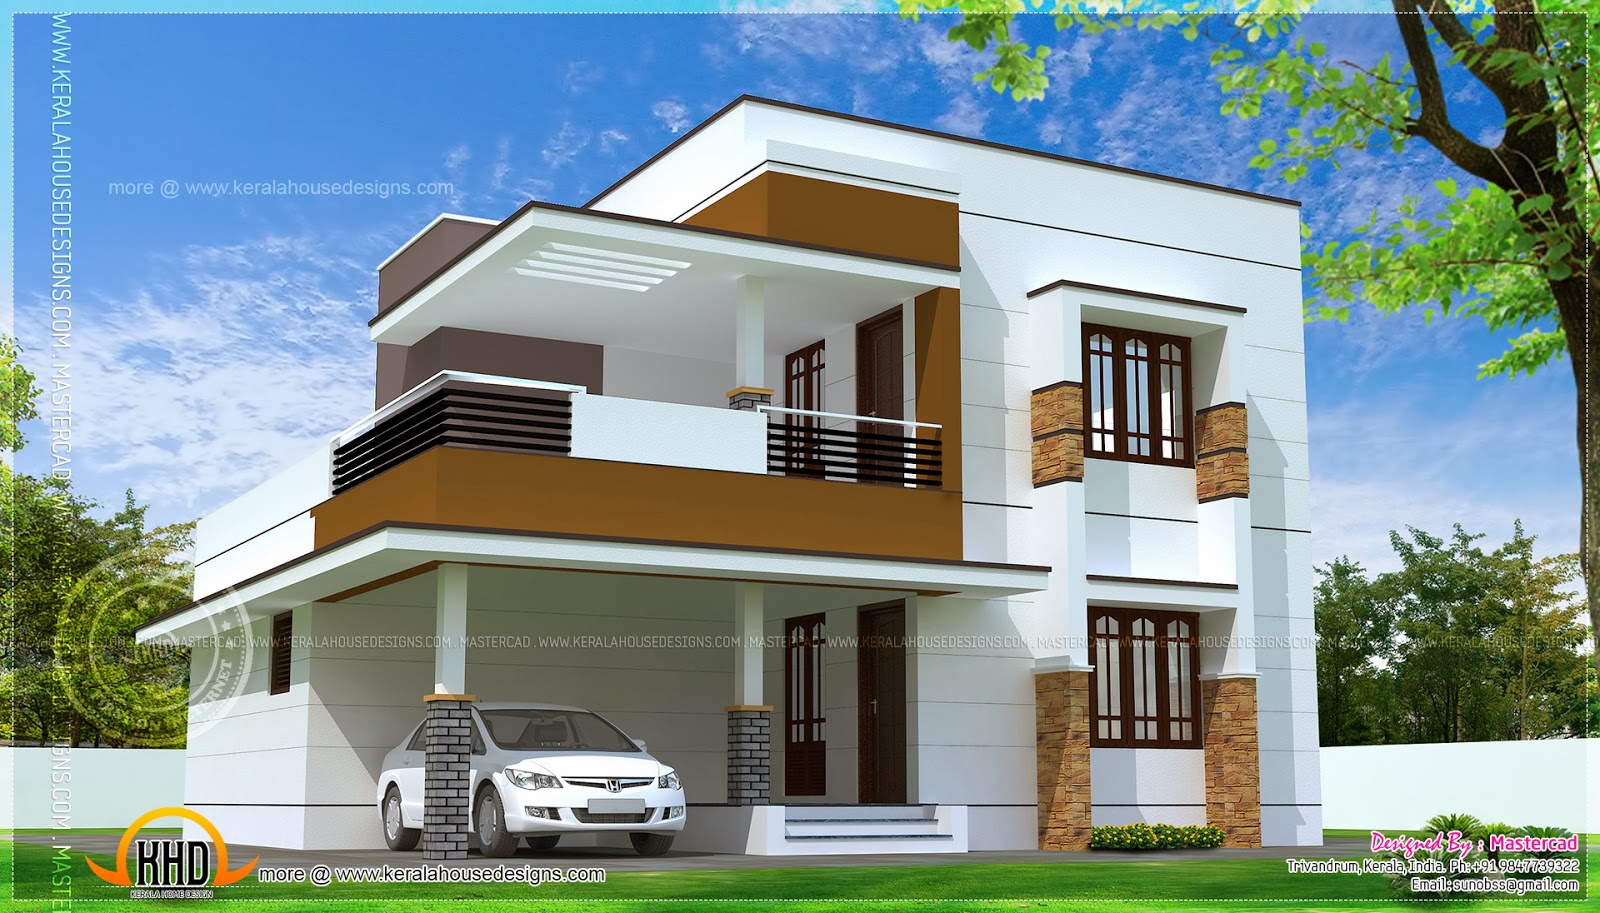 November 2013 kerala home design and floor plans - Design of home ...